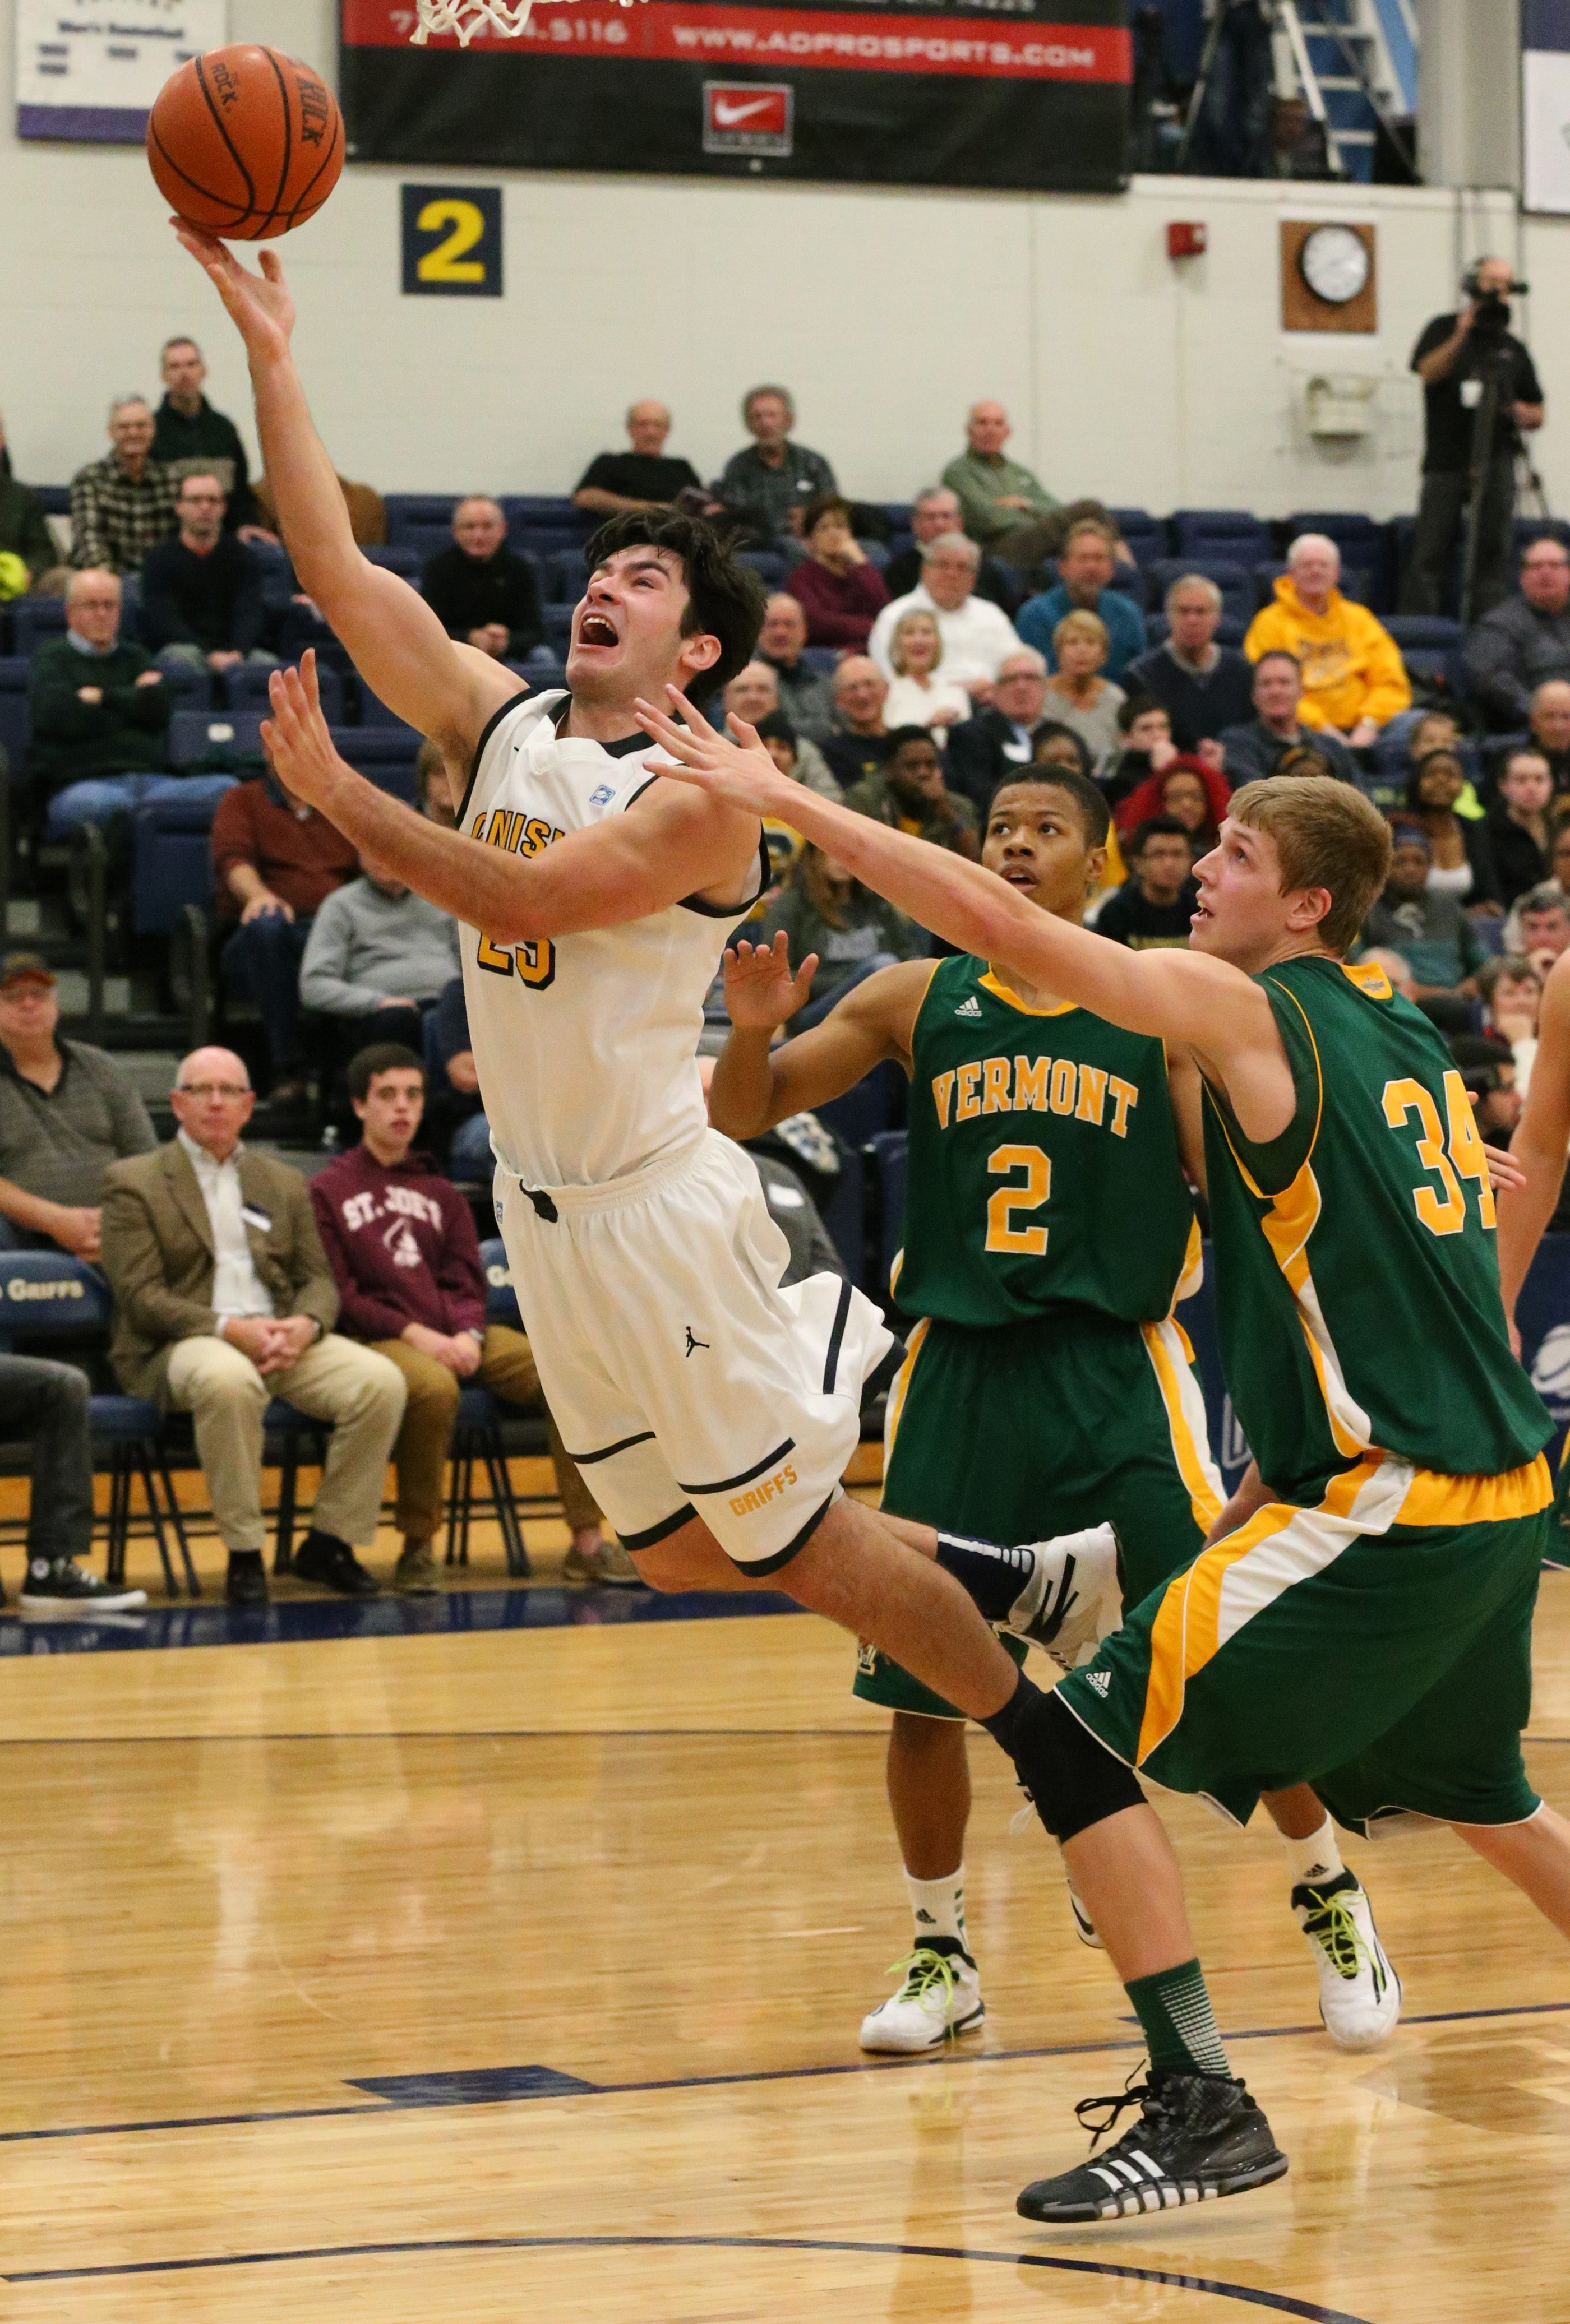 Canisius College guard Adam Weir (25) drives to the basket on Vermont on Nov. 15, 2014. (James P. McCoy/ Buffalo News)